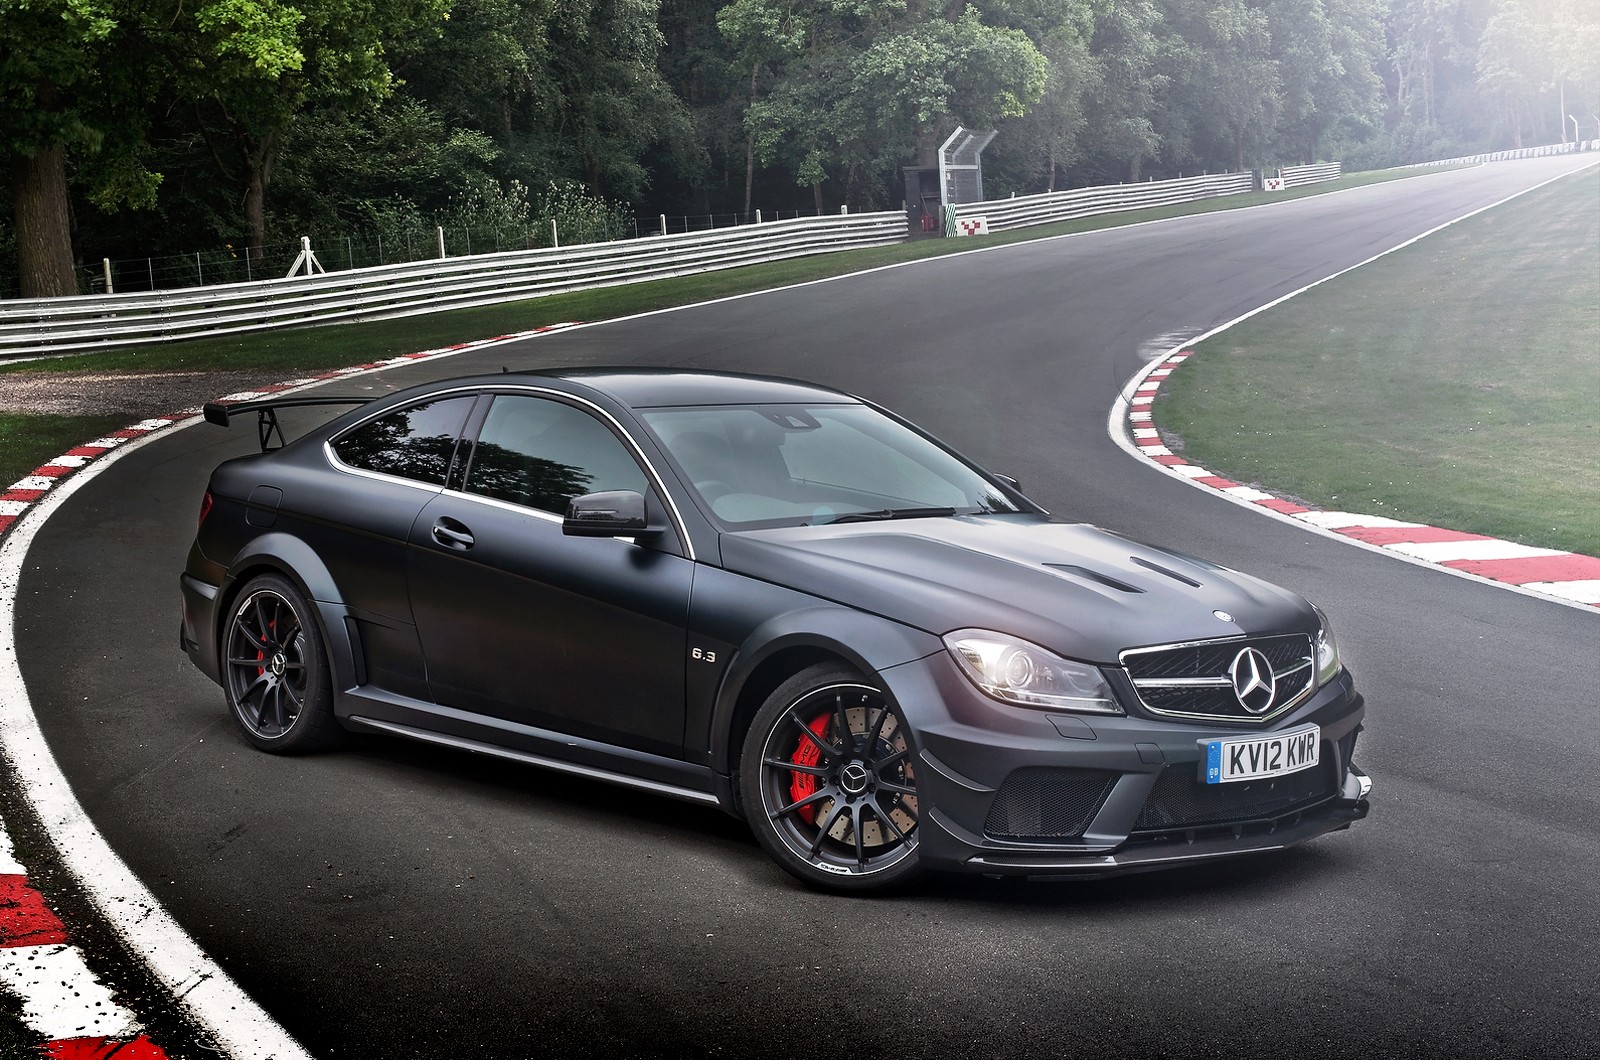 mercedes benz c63 amg coupe black series 2012 2012 review autocar. Black Bedroom Furniture Sets. Home Design Ideas